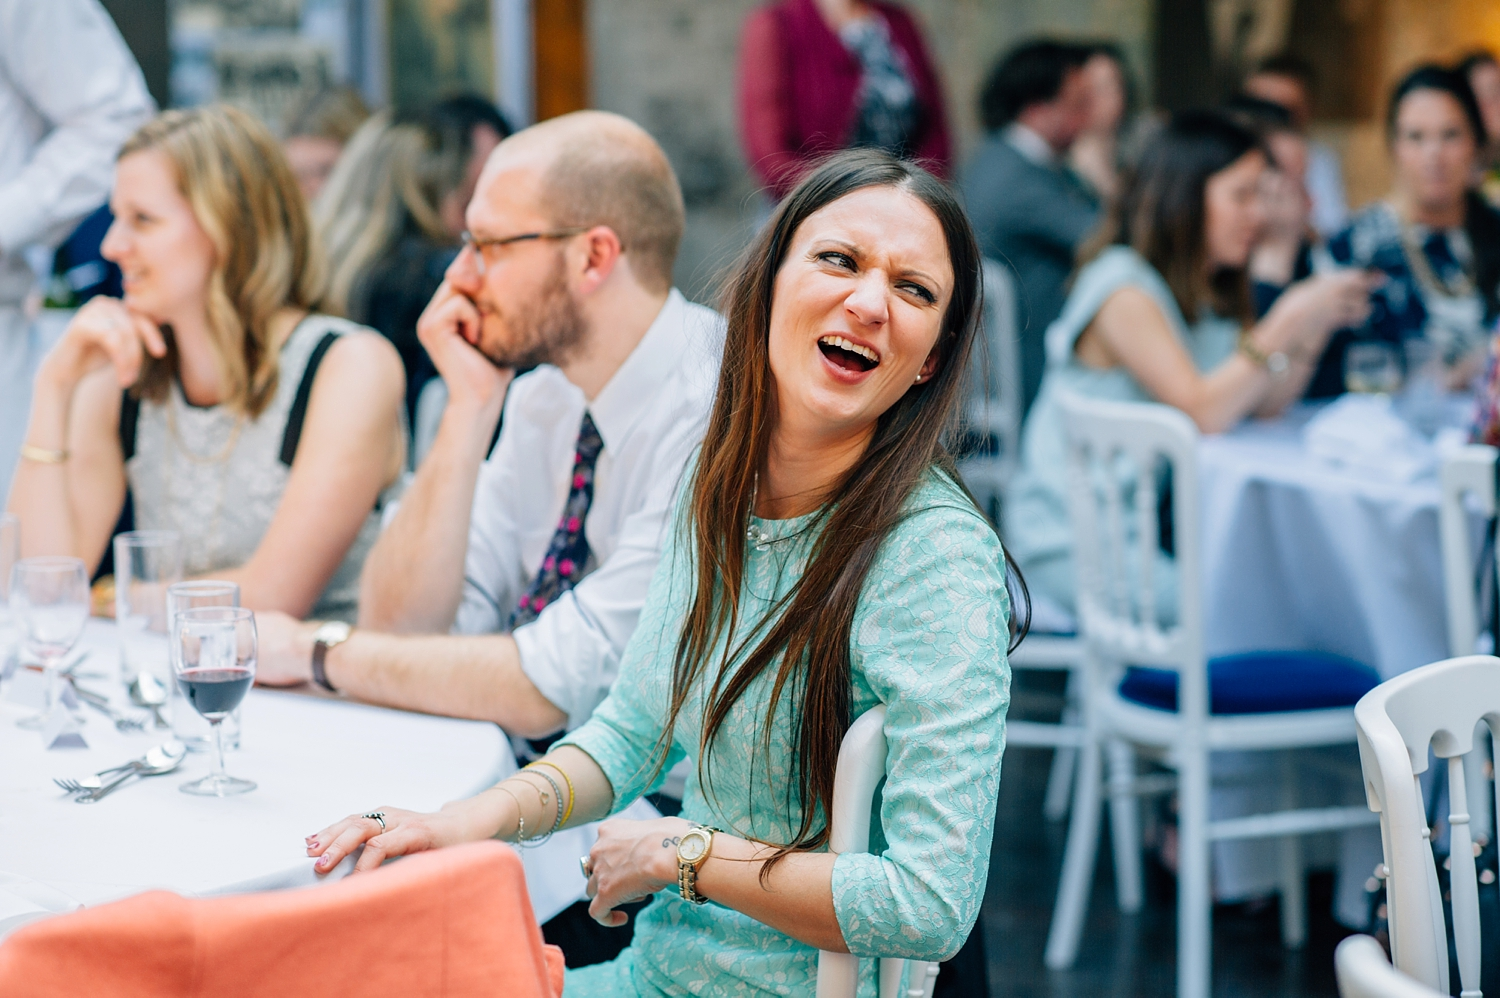 0149-lisa-devine-alternative-wedding-photography-london-hackney-dalston-london-photography-townhall-hotel.JPG